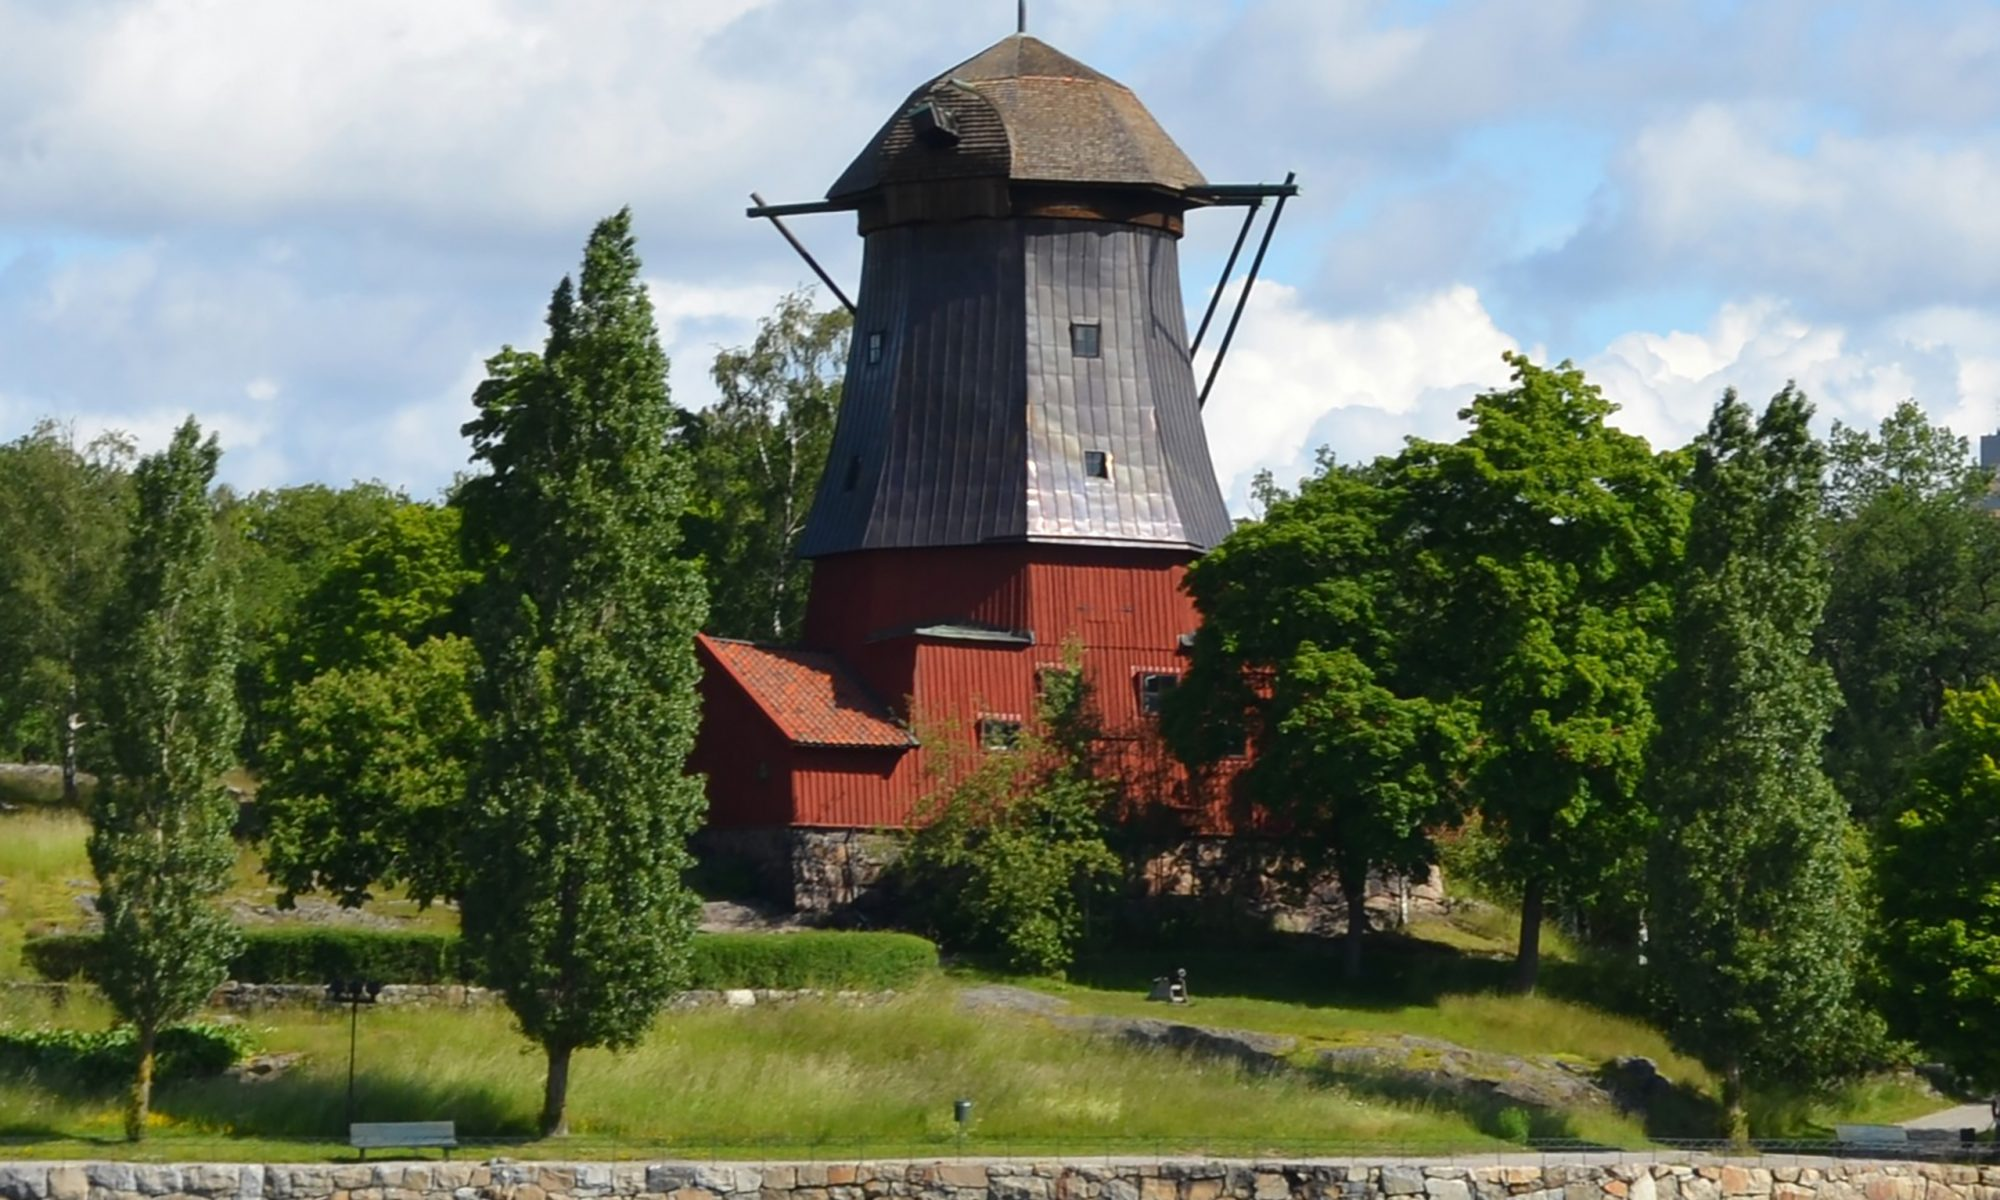 The Waldemarsudde Oil Mill